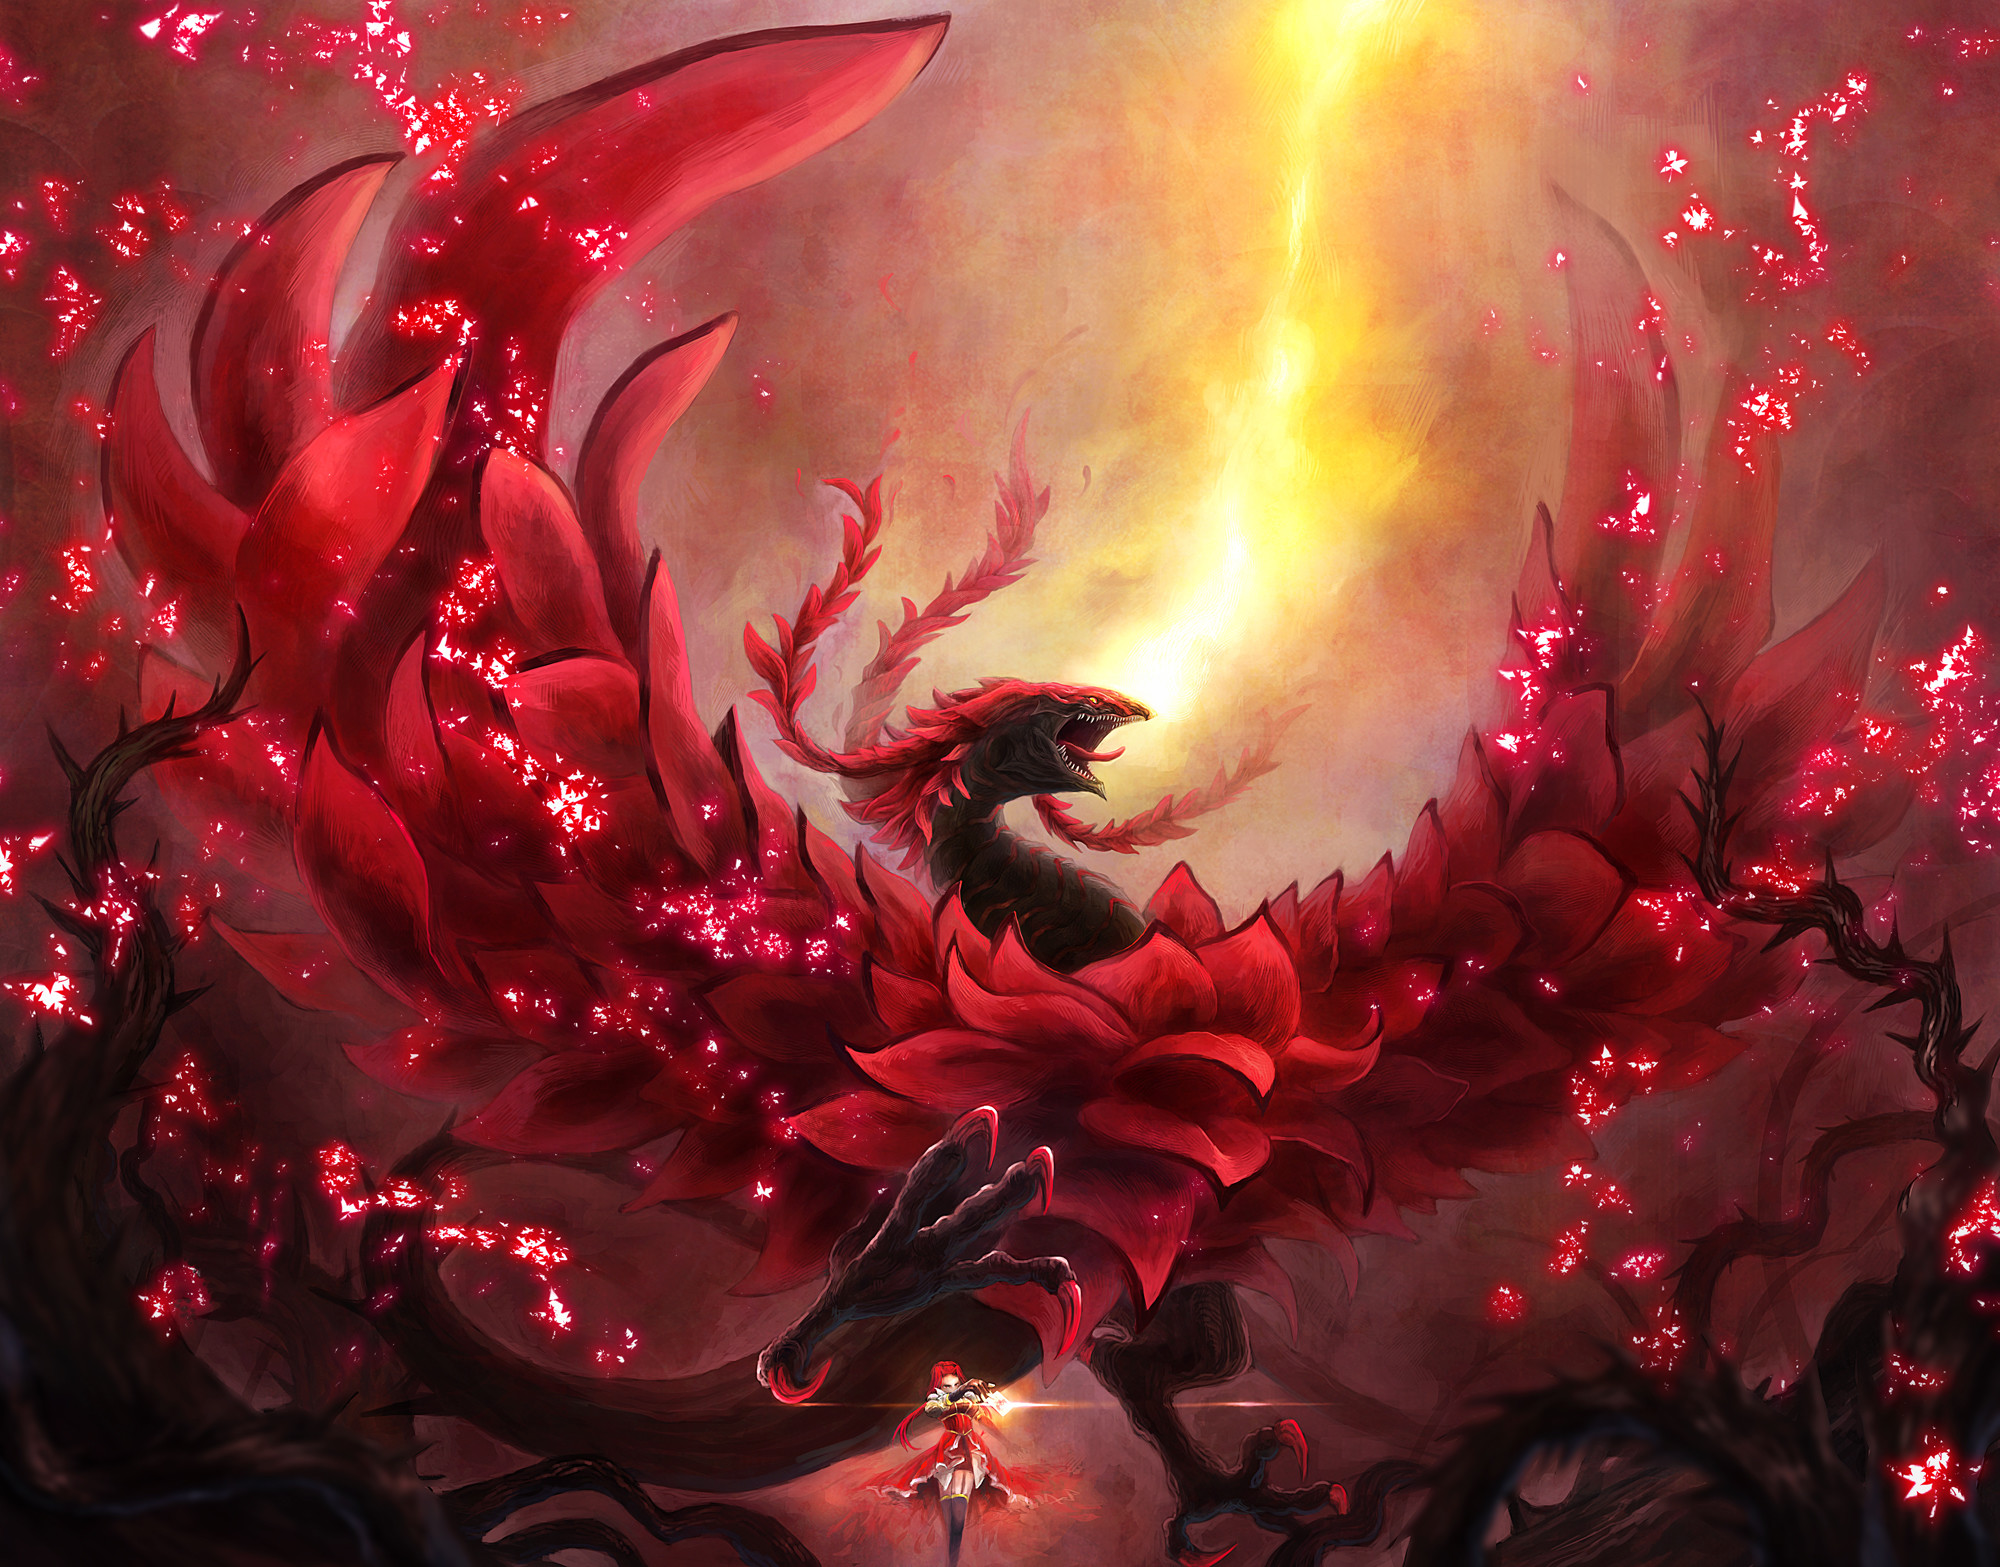 Yugioh Slifer The Sky Dragon Wallpaper (46+ Pictures